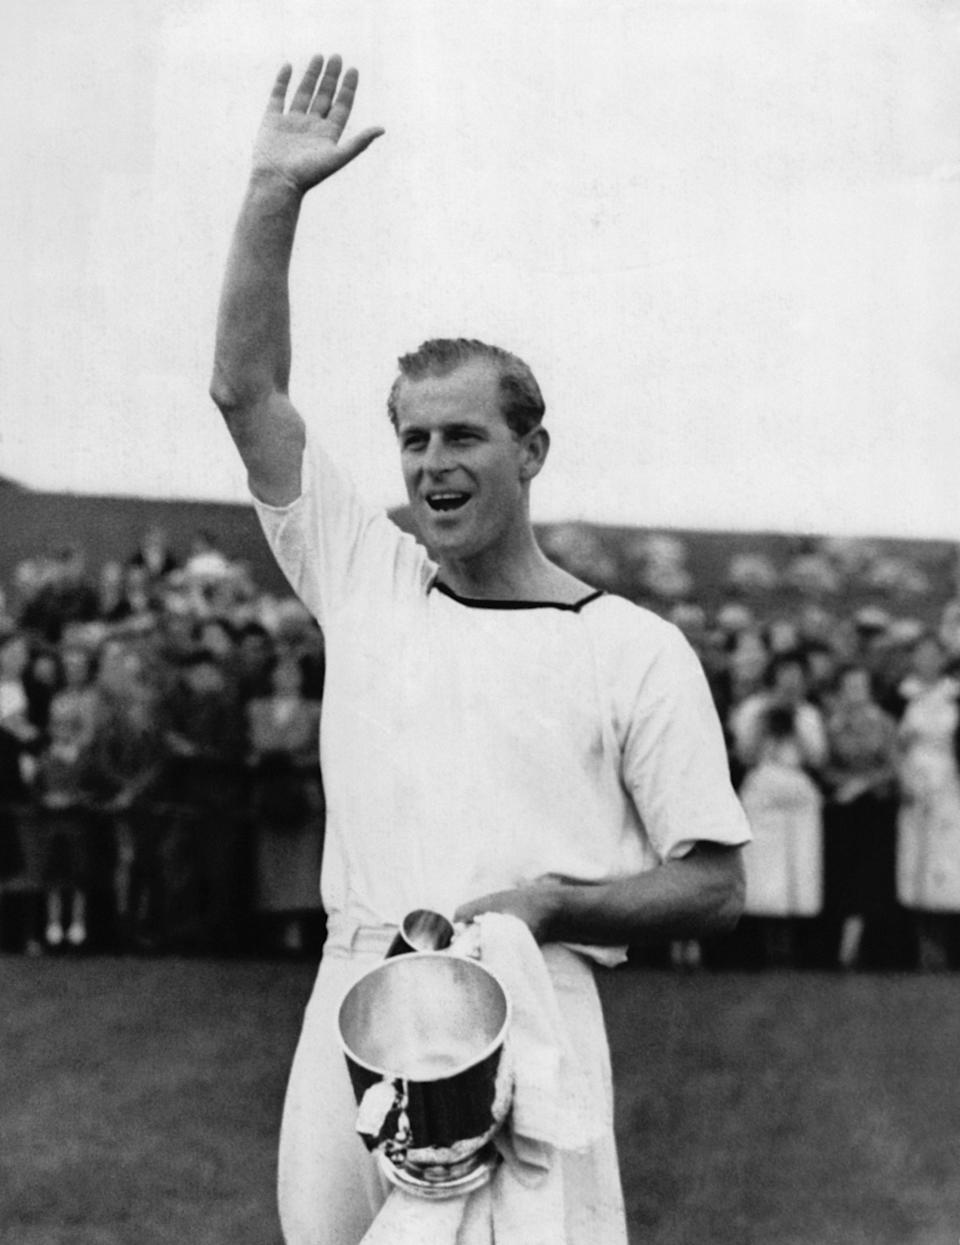 <p>Keen polo player Philip led a cheer after in winning a match in May 1954. Photo: Getty Images.</p>